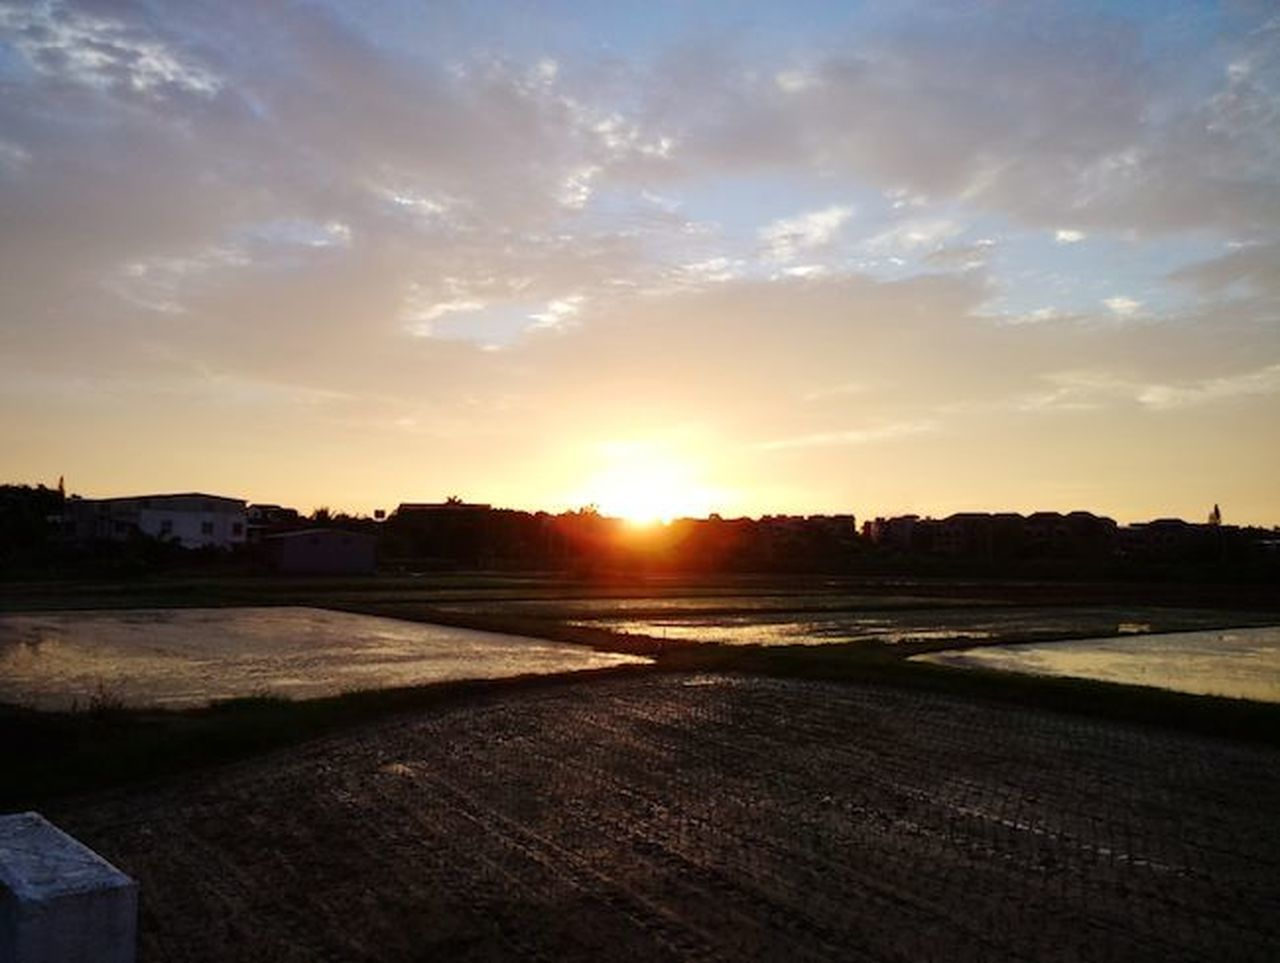 sunset, sunlight, outdoors, sky, no people, sun, scenics, cloud - sky, nature, tranquility, beauty in nature, water, building exterior, day